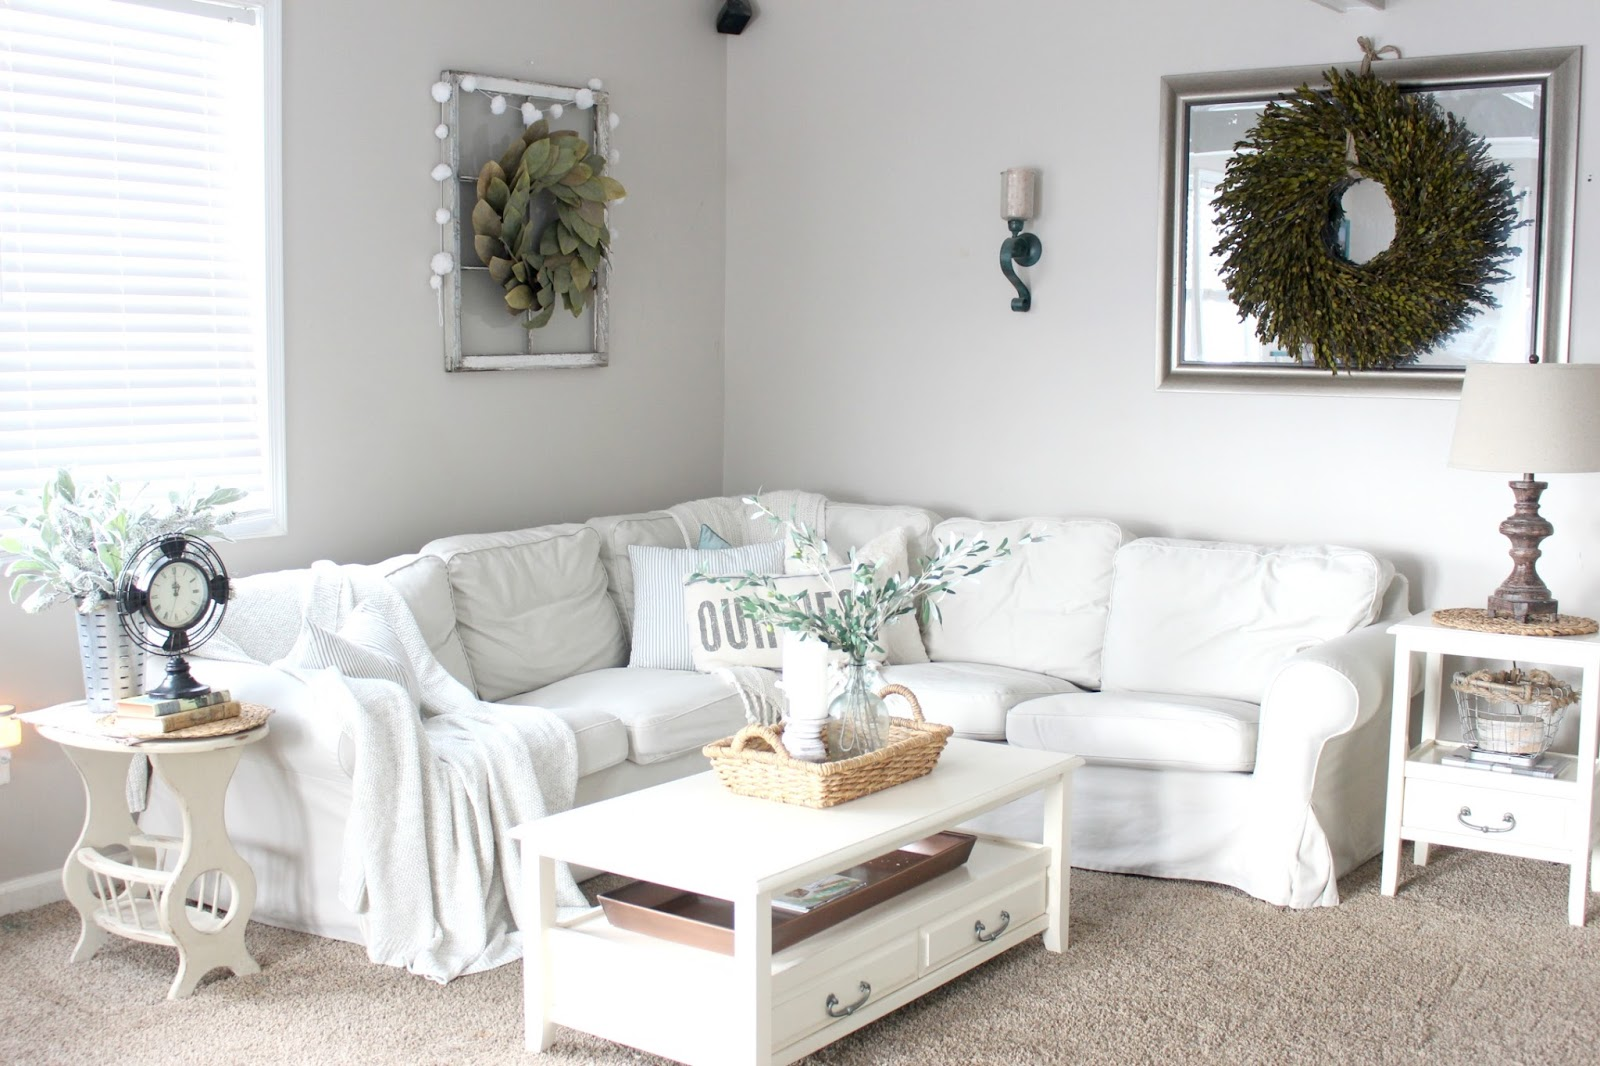 The Glam Farmhouse Living Room Tour - The Glam Farmhouse